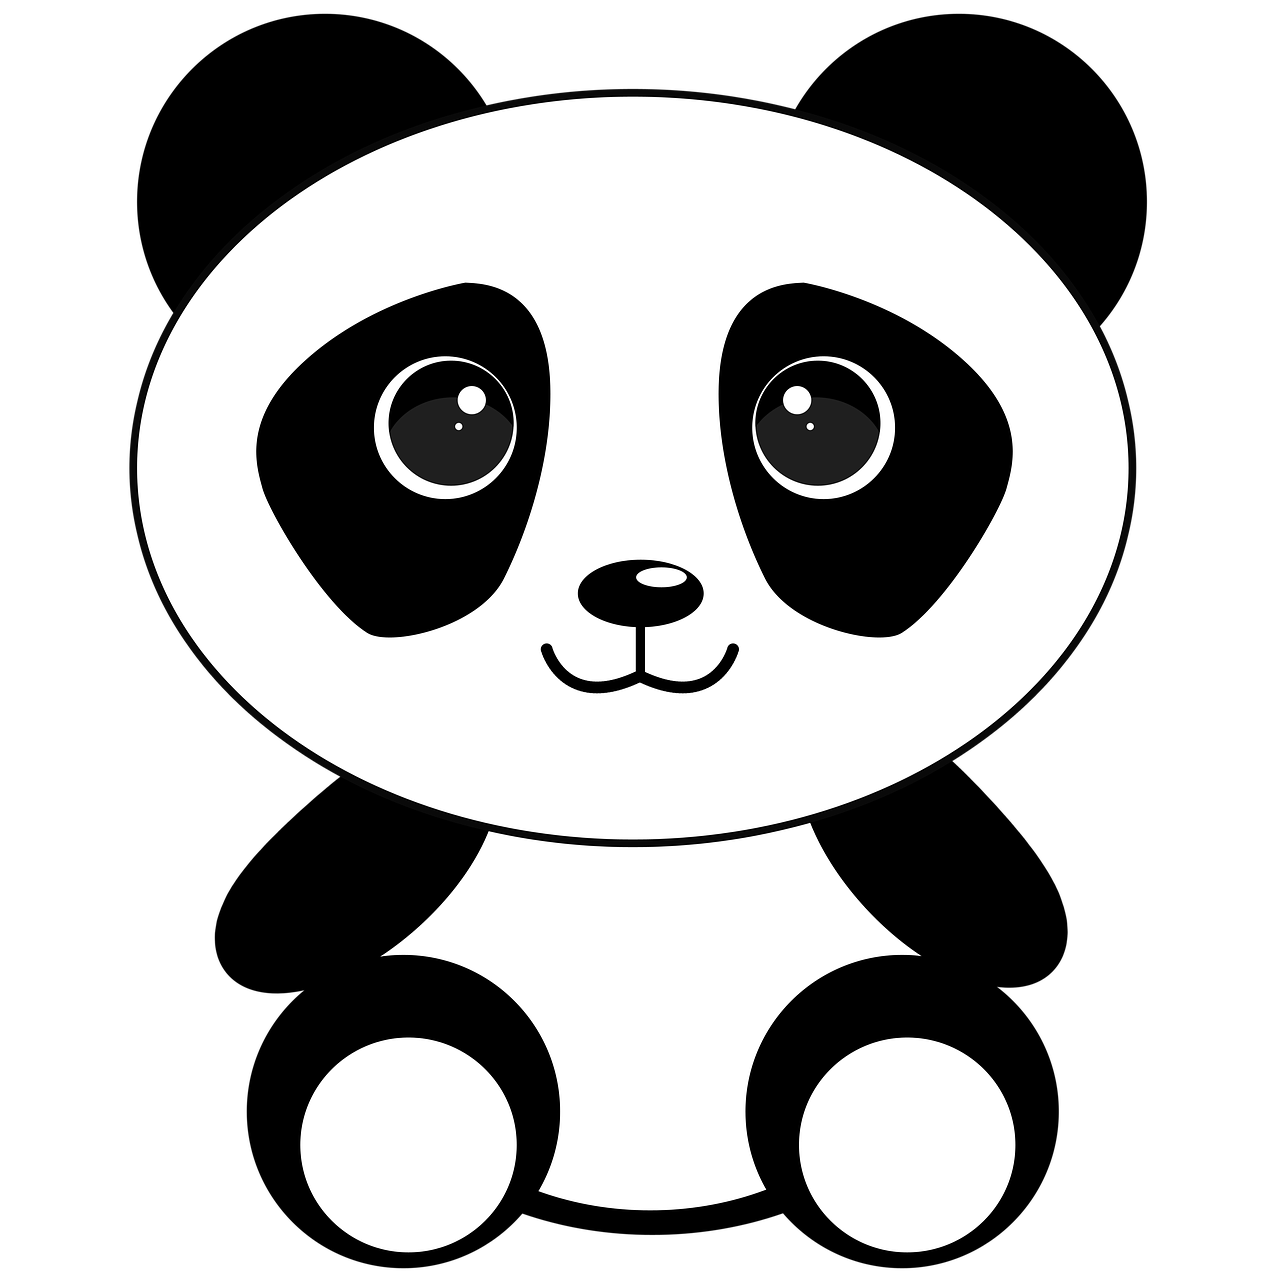 Panda stickers png. By sid y messages